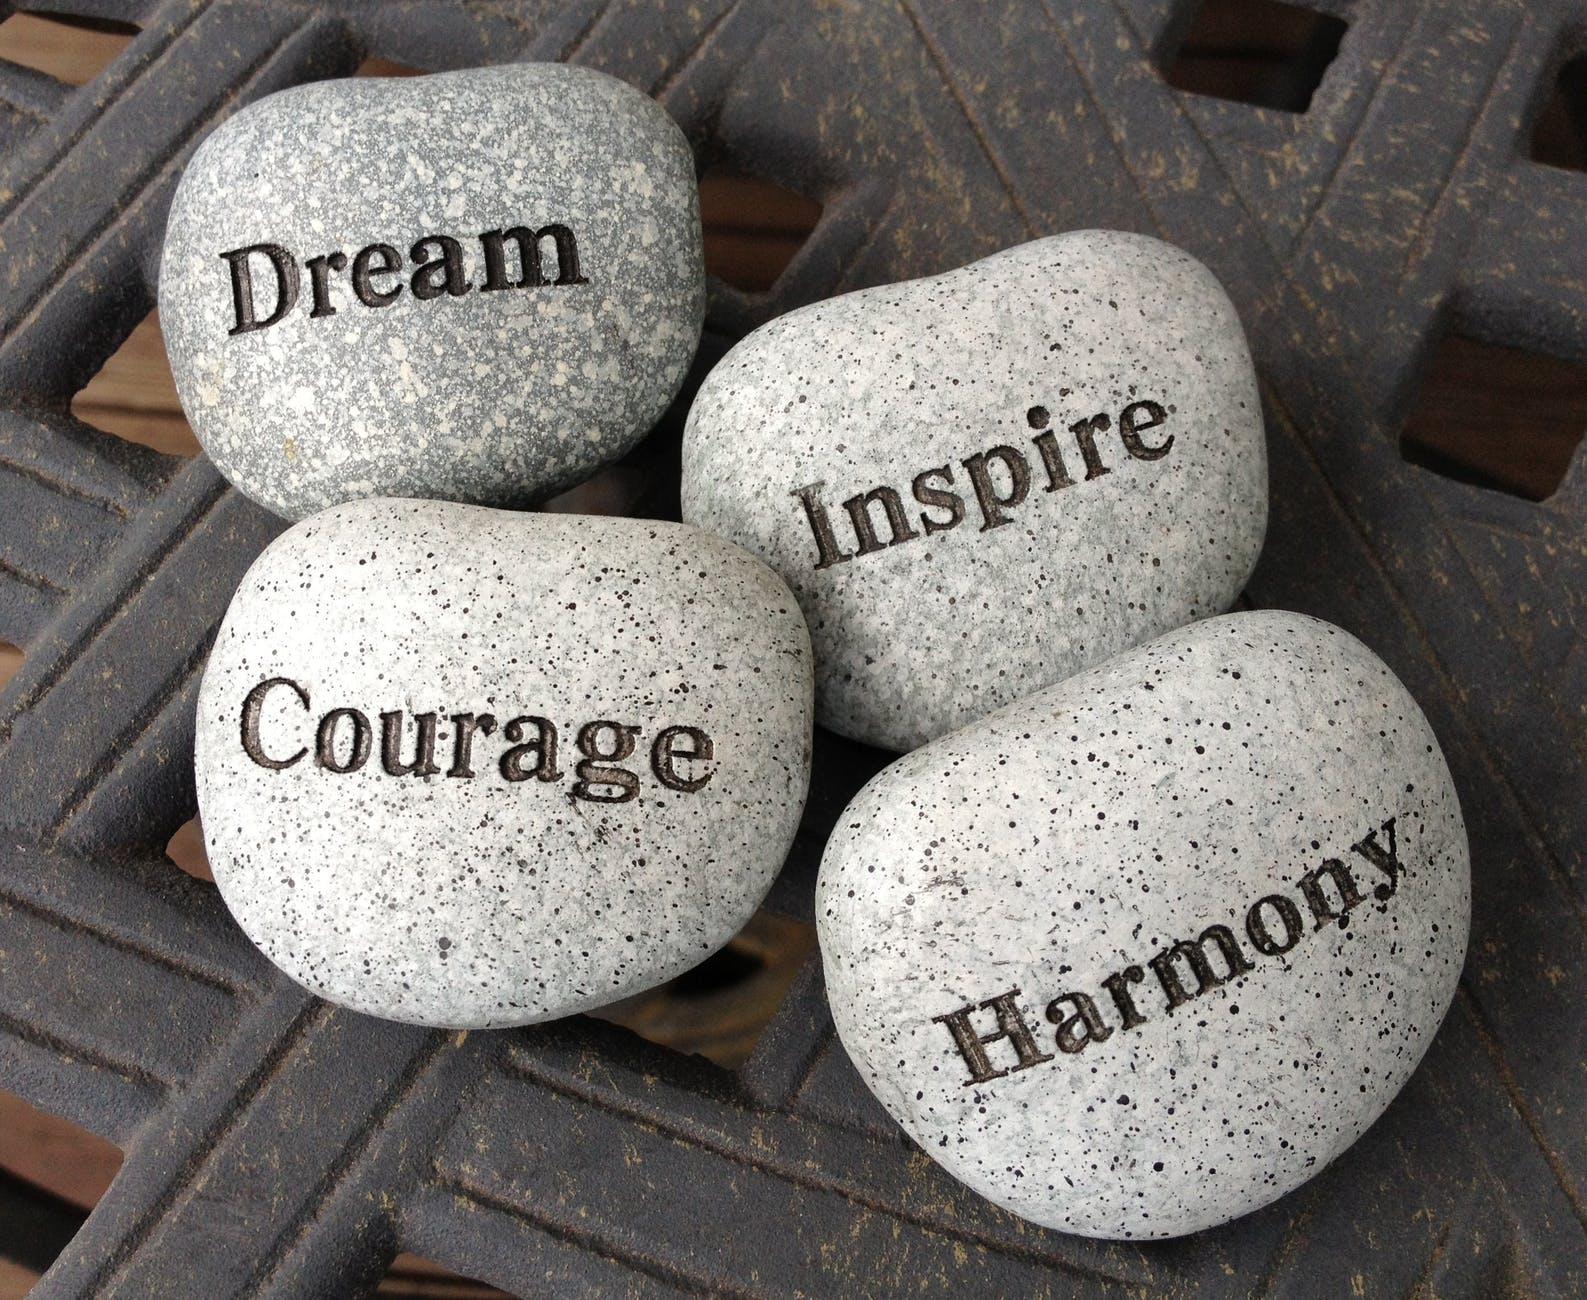 Words engraved on white speckled pebbles - what are your personal values that you live by